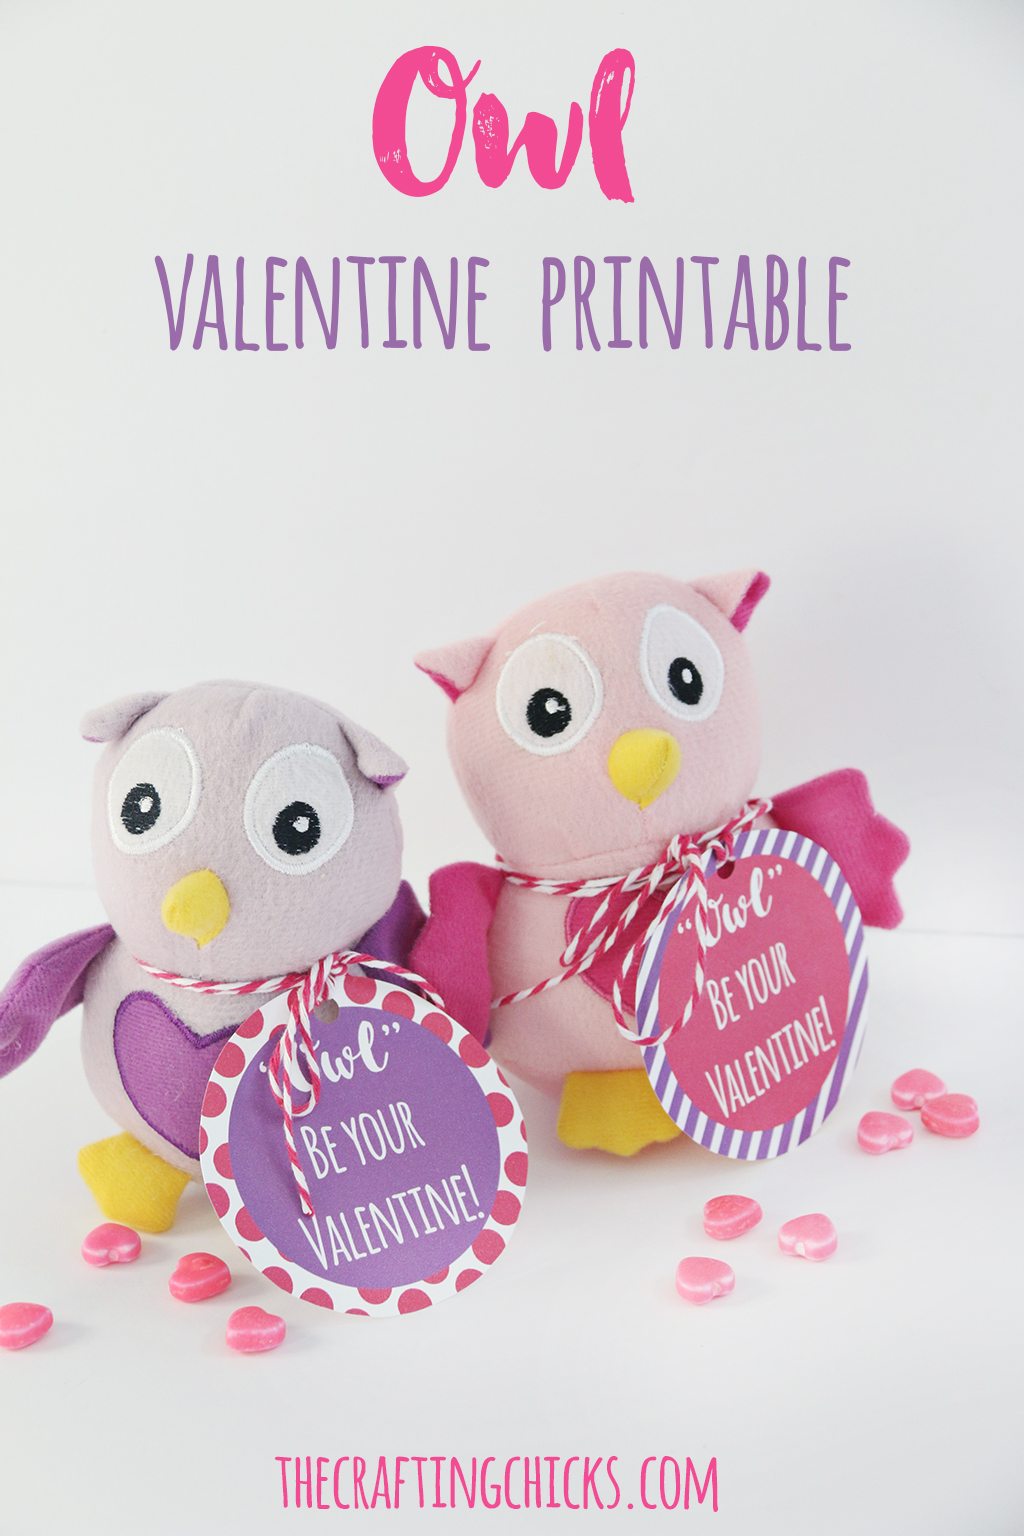 Owl Valentine Printable The Crafting Chicks